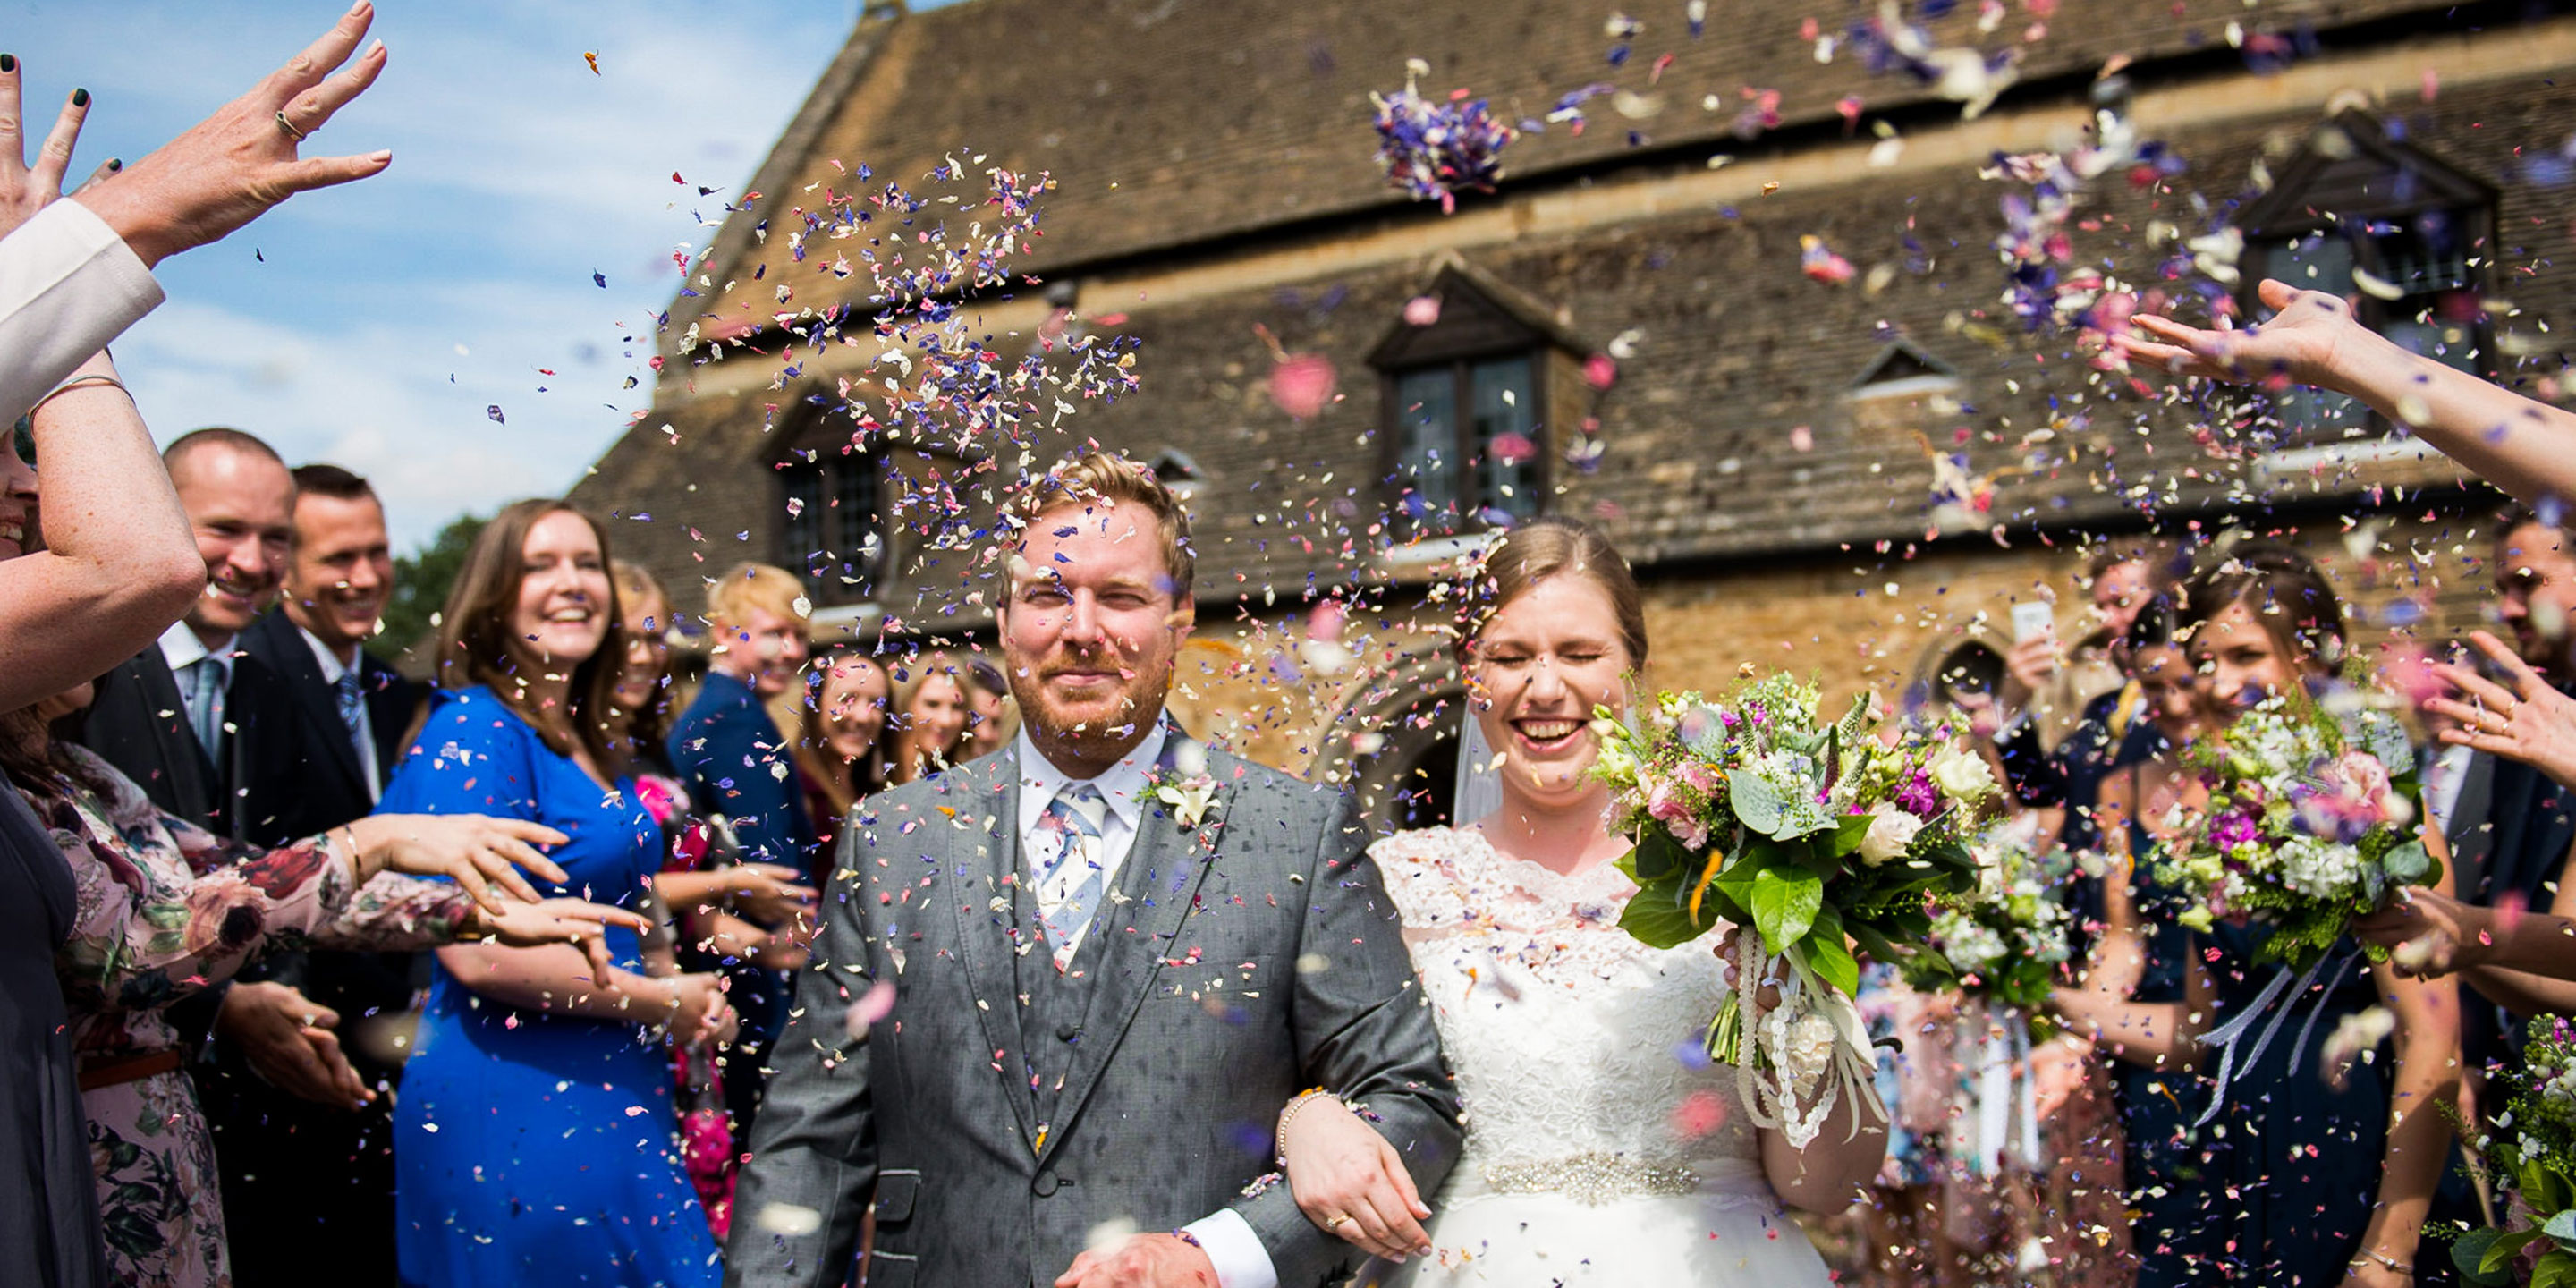 Rutland wedding with gorgeous confetti, all the confetti in fact. Leicestershire wedding photographer, rutland wedding photographer